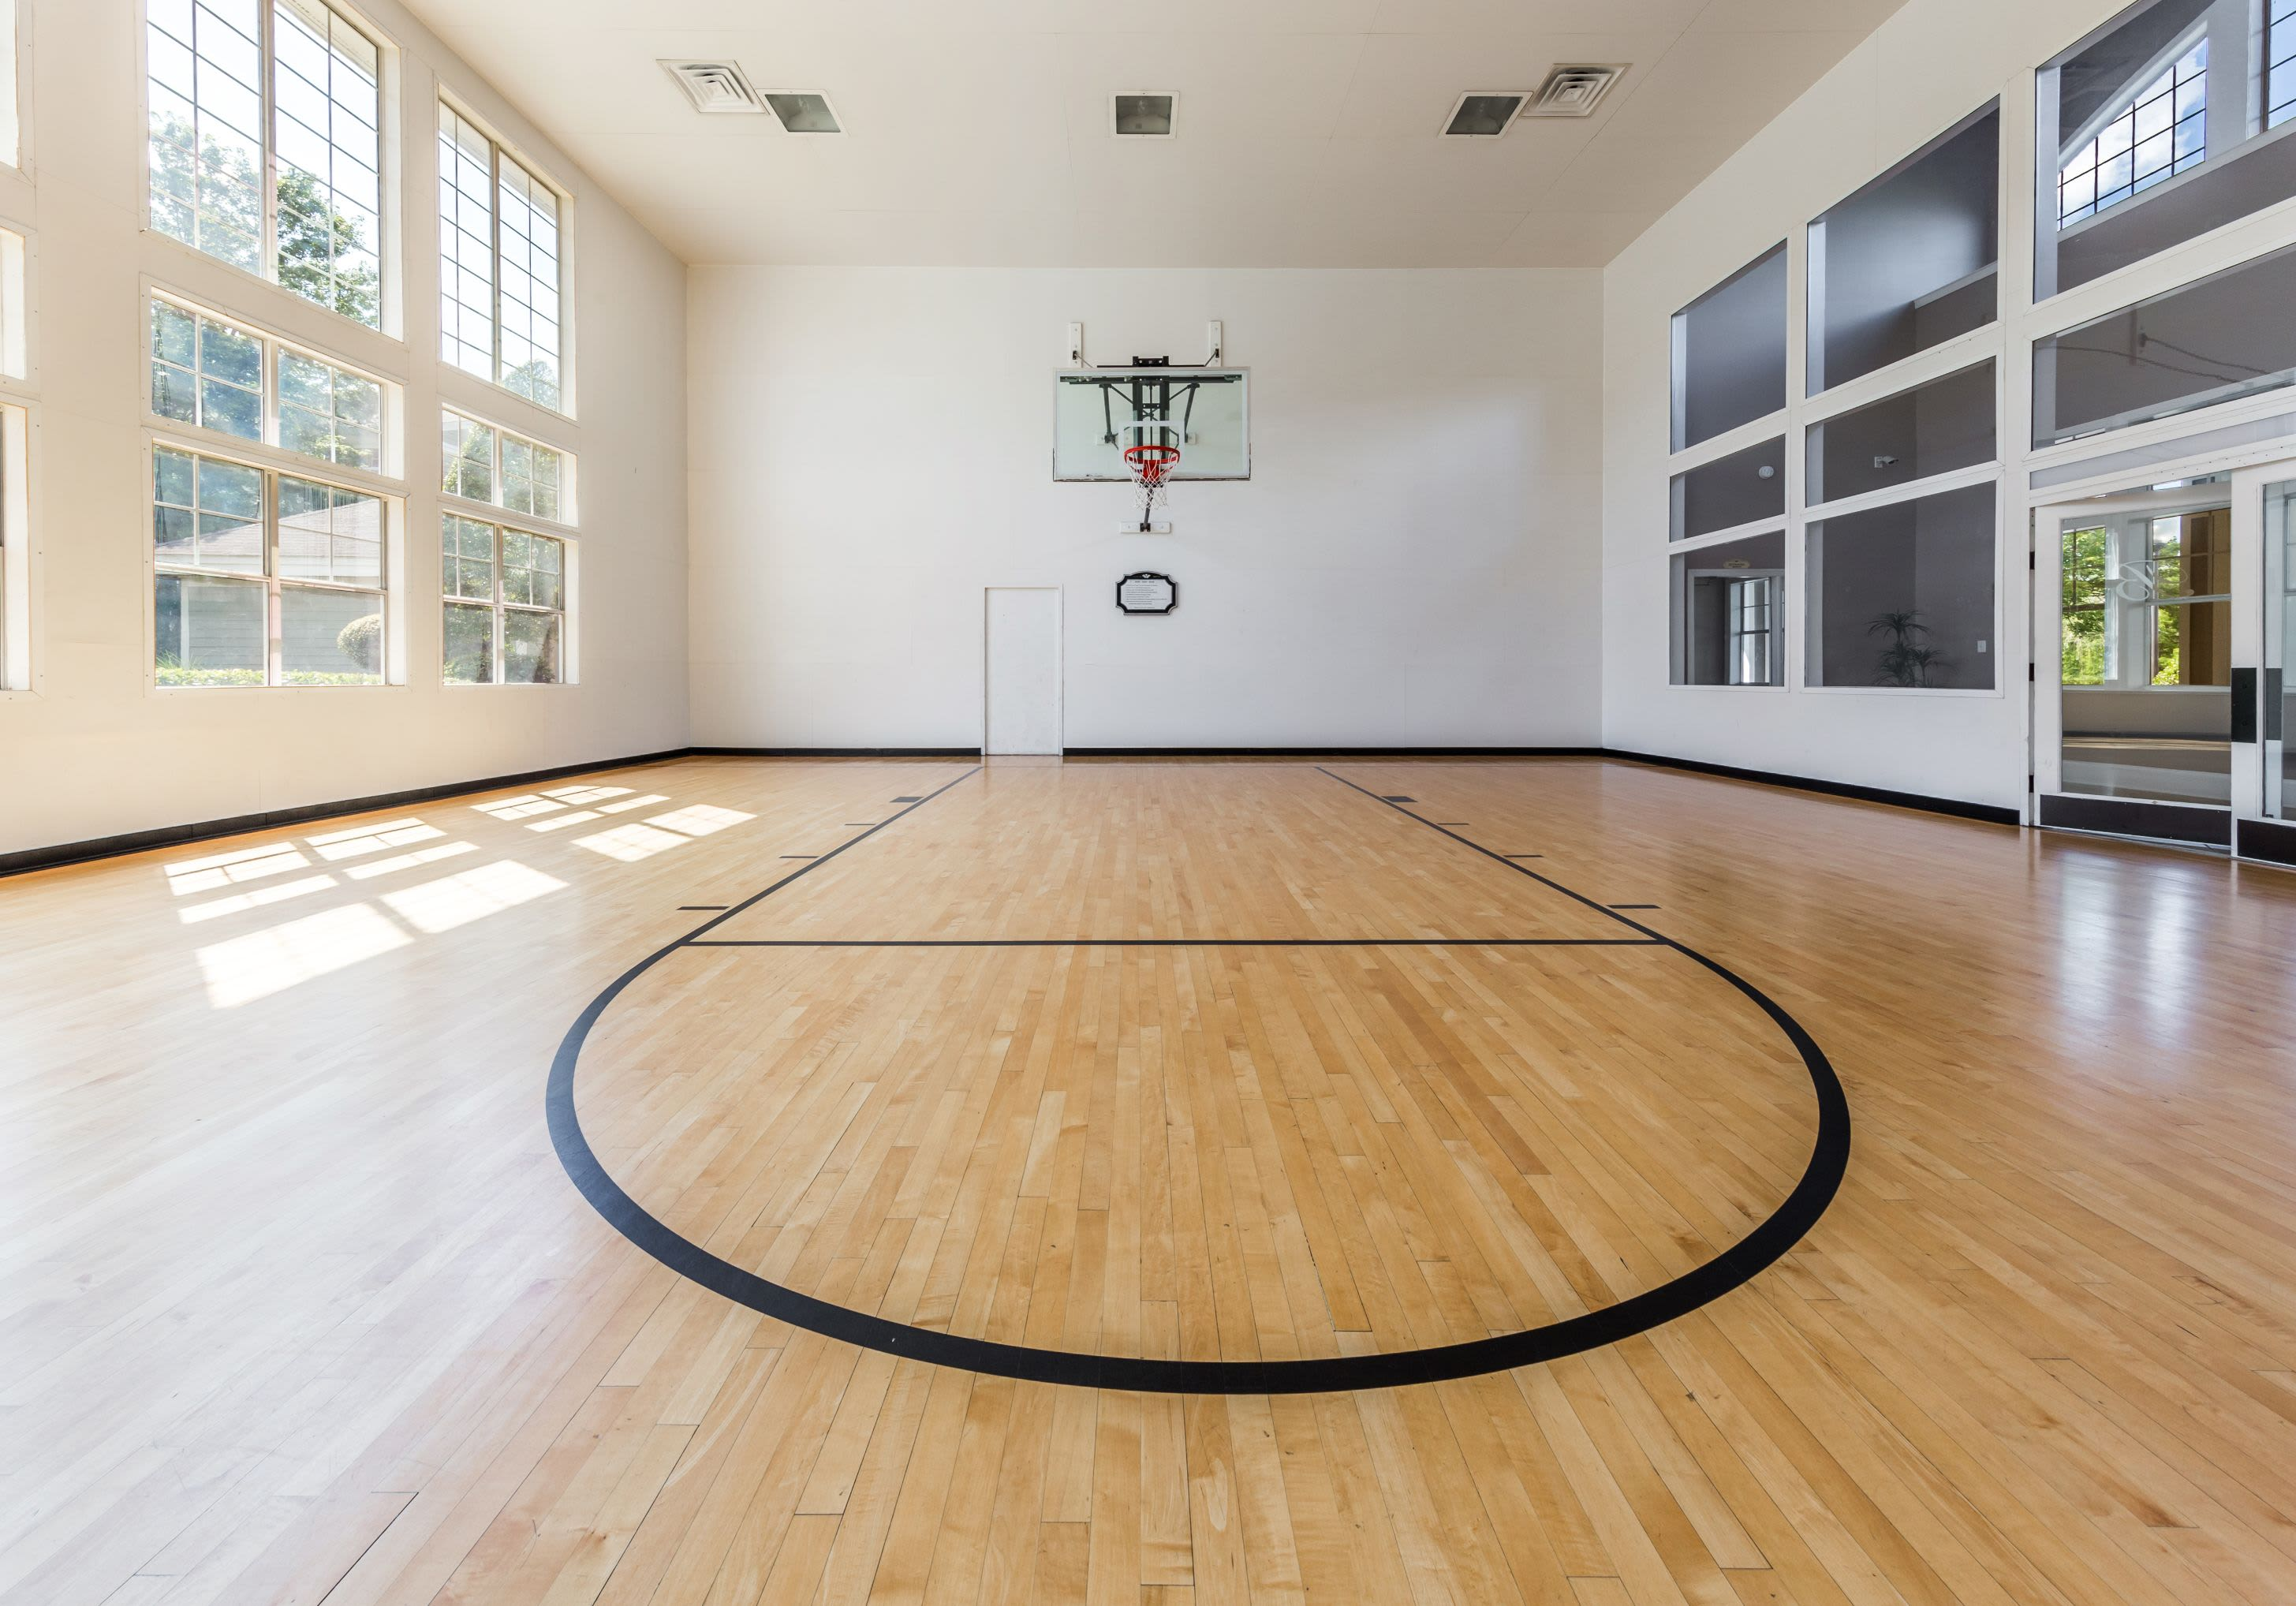 Basketball court at The Preserve at Ballantyne Commons in Charlotte, North Carolina